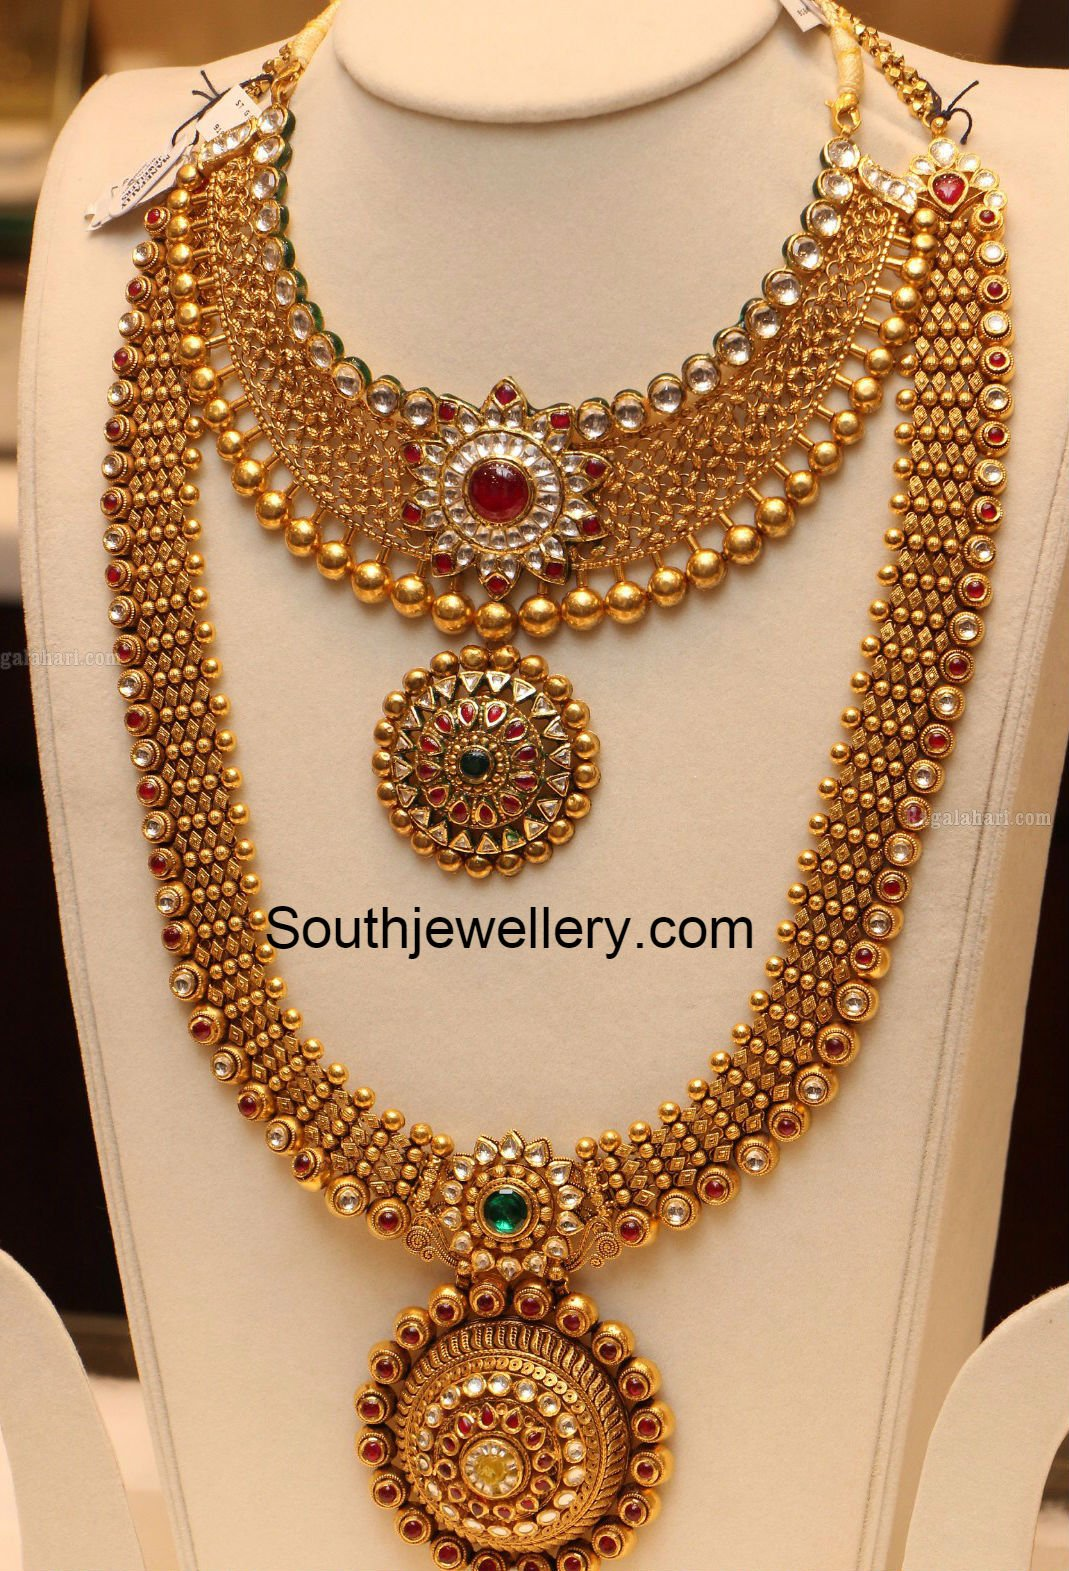 Kundan long chain latest jewelry designs - Page 3 of 10 ...